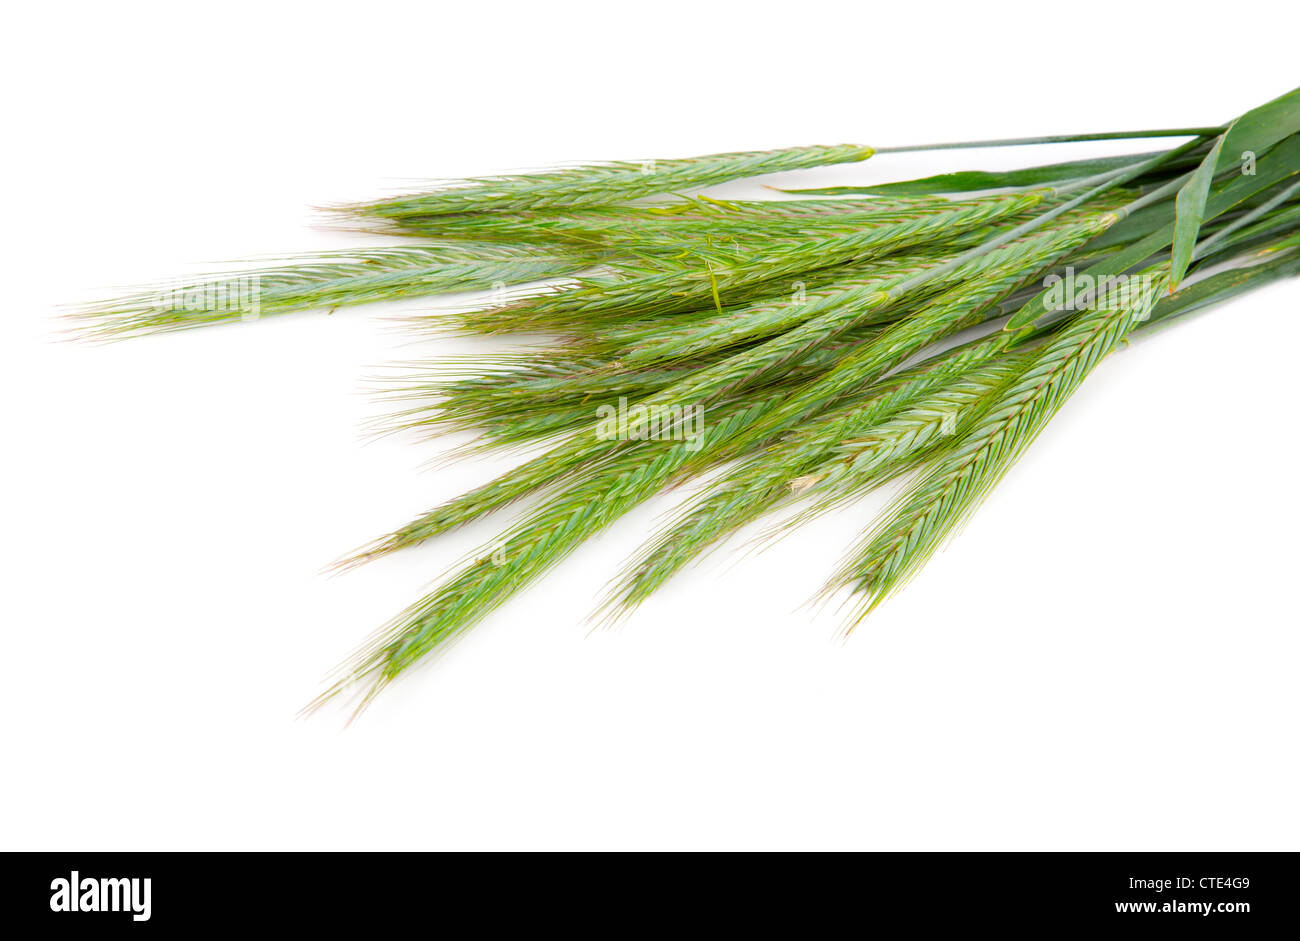 Green rye spikes (Secale cereale), on white background - Stock Image